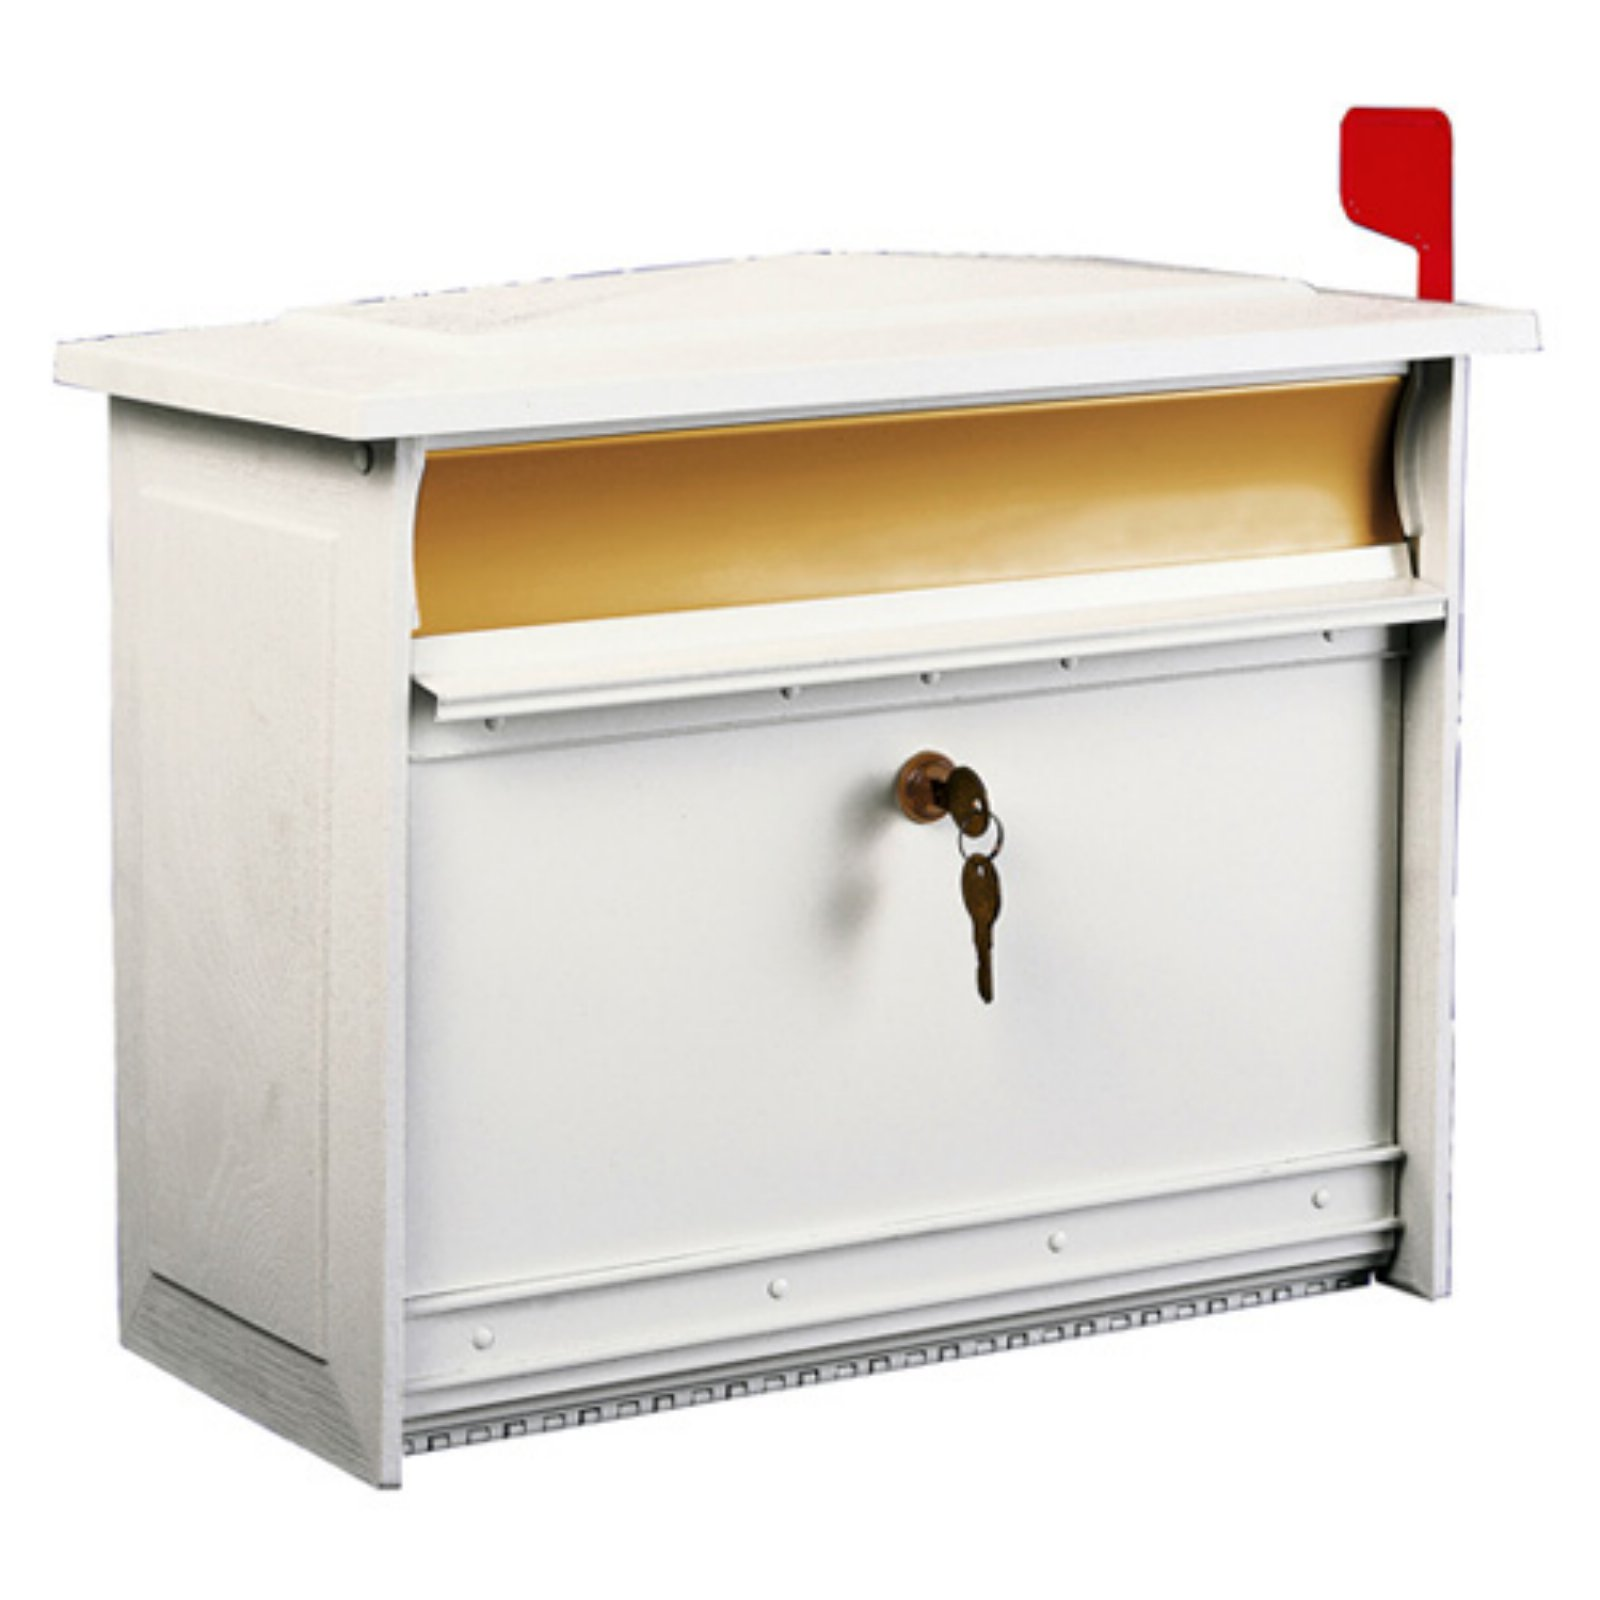 Solar Group Inc MSK0000W Extra-Large White Mailsafe Lockable Security Mailbox by Overstock